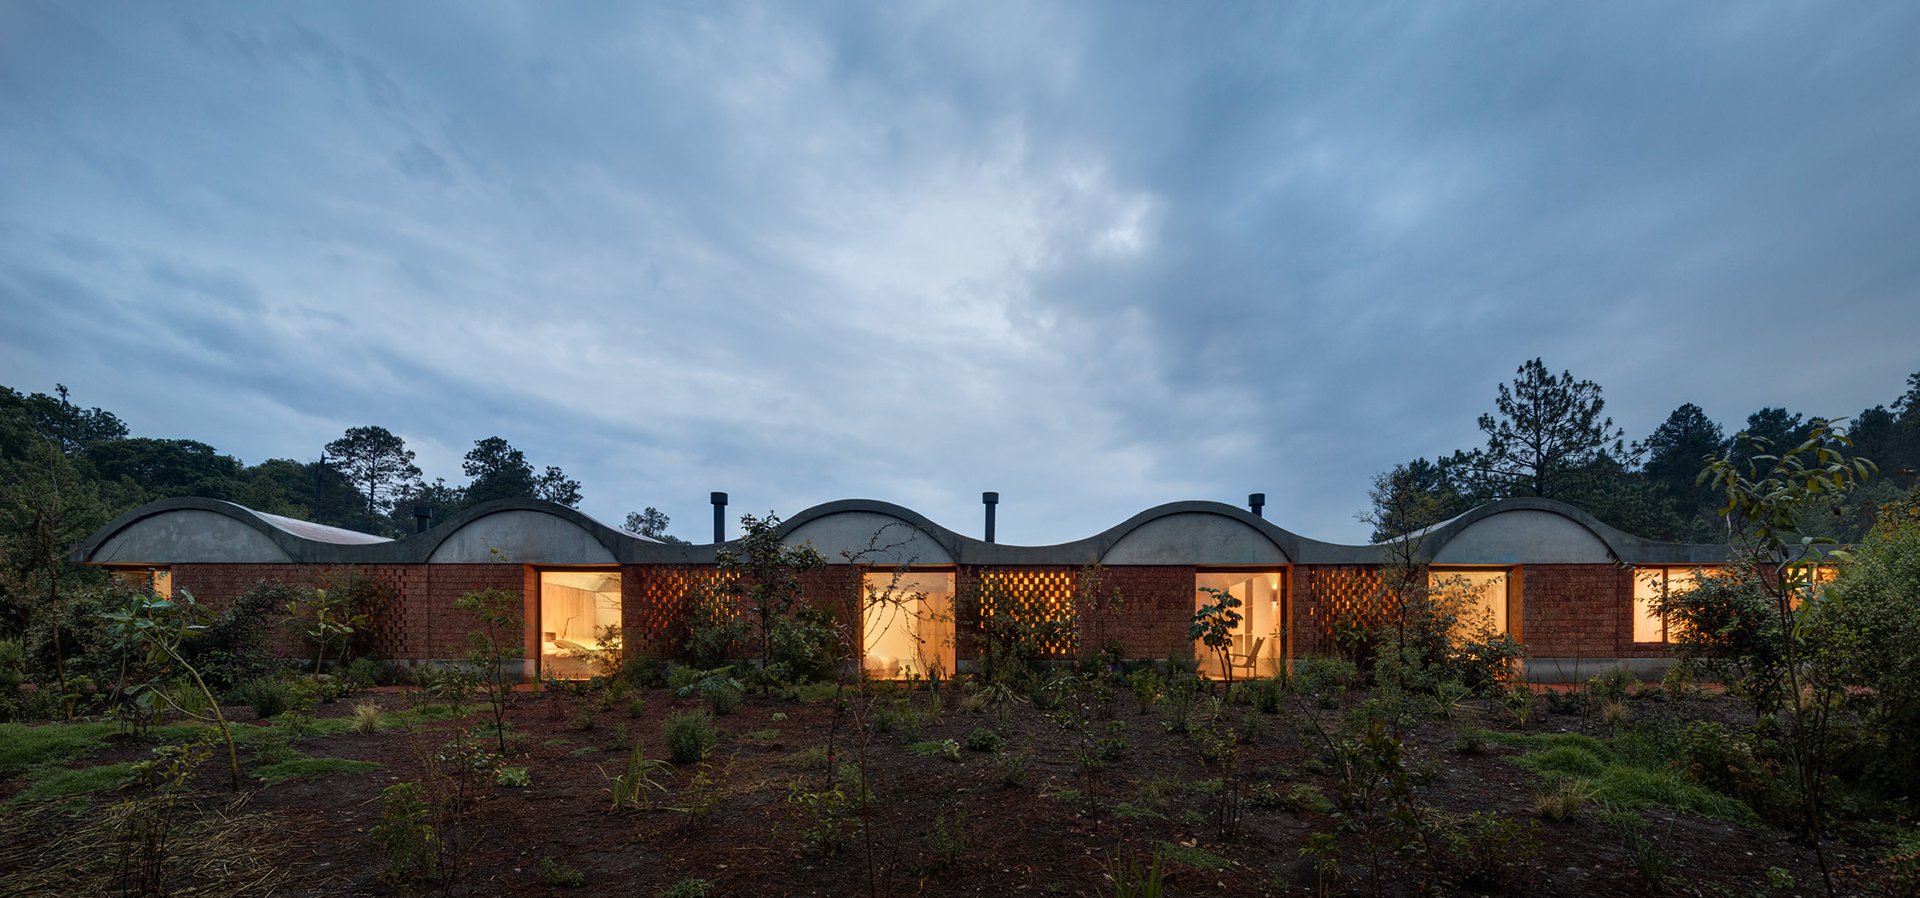 Casa Terreno by Fernanda Canales| Royal Academy of Arts Architecture Awards| STIR